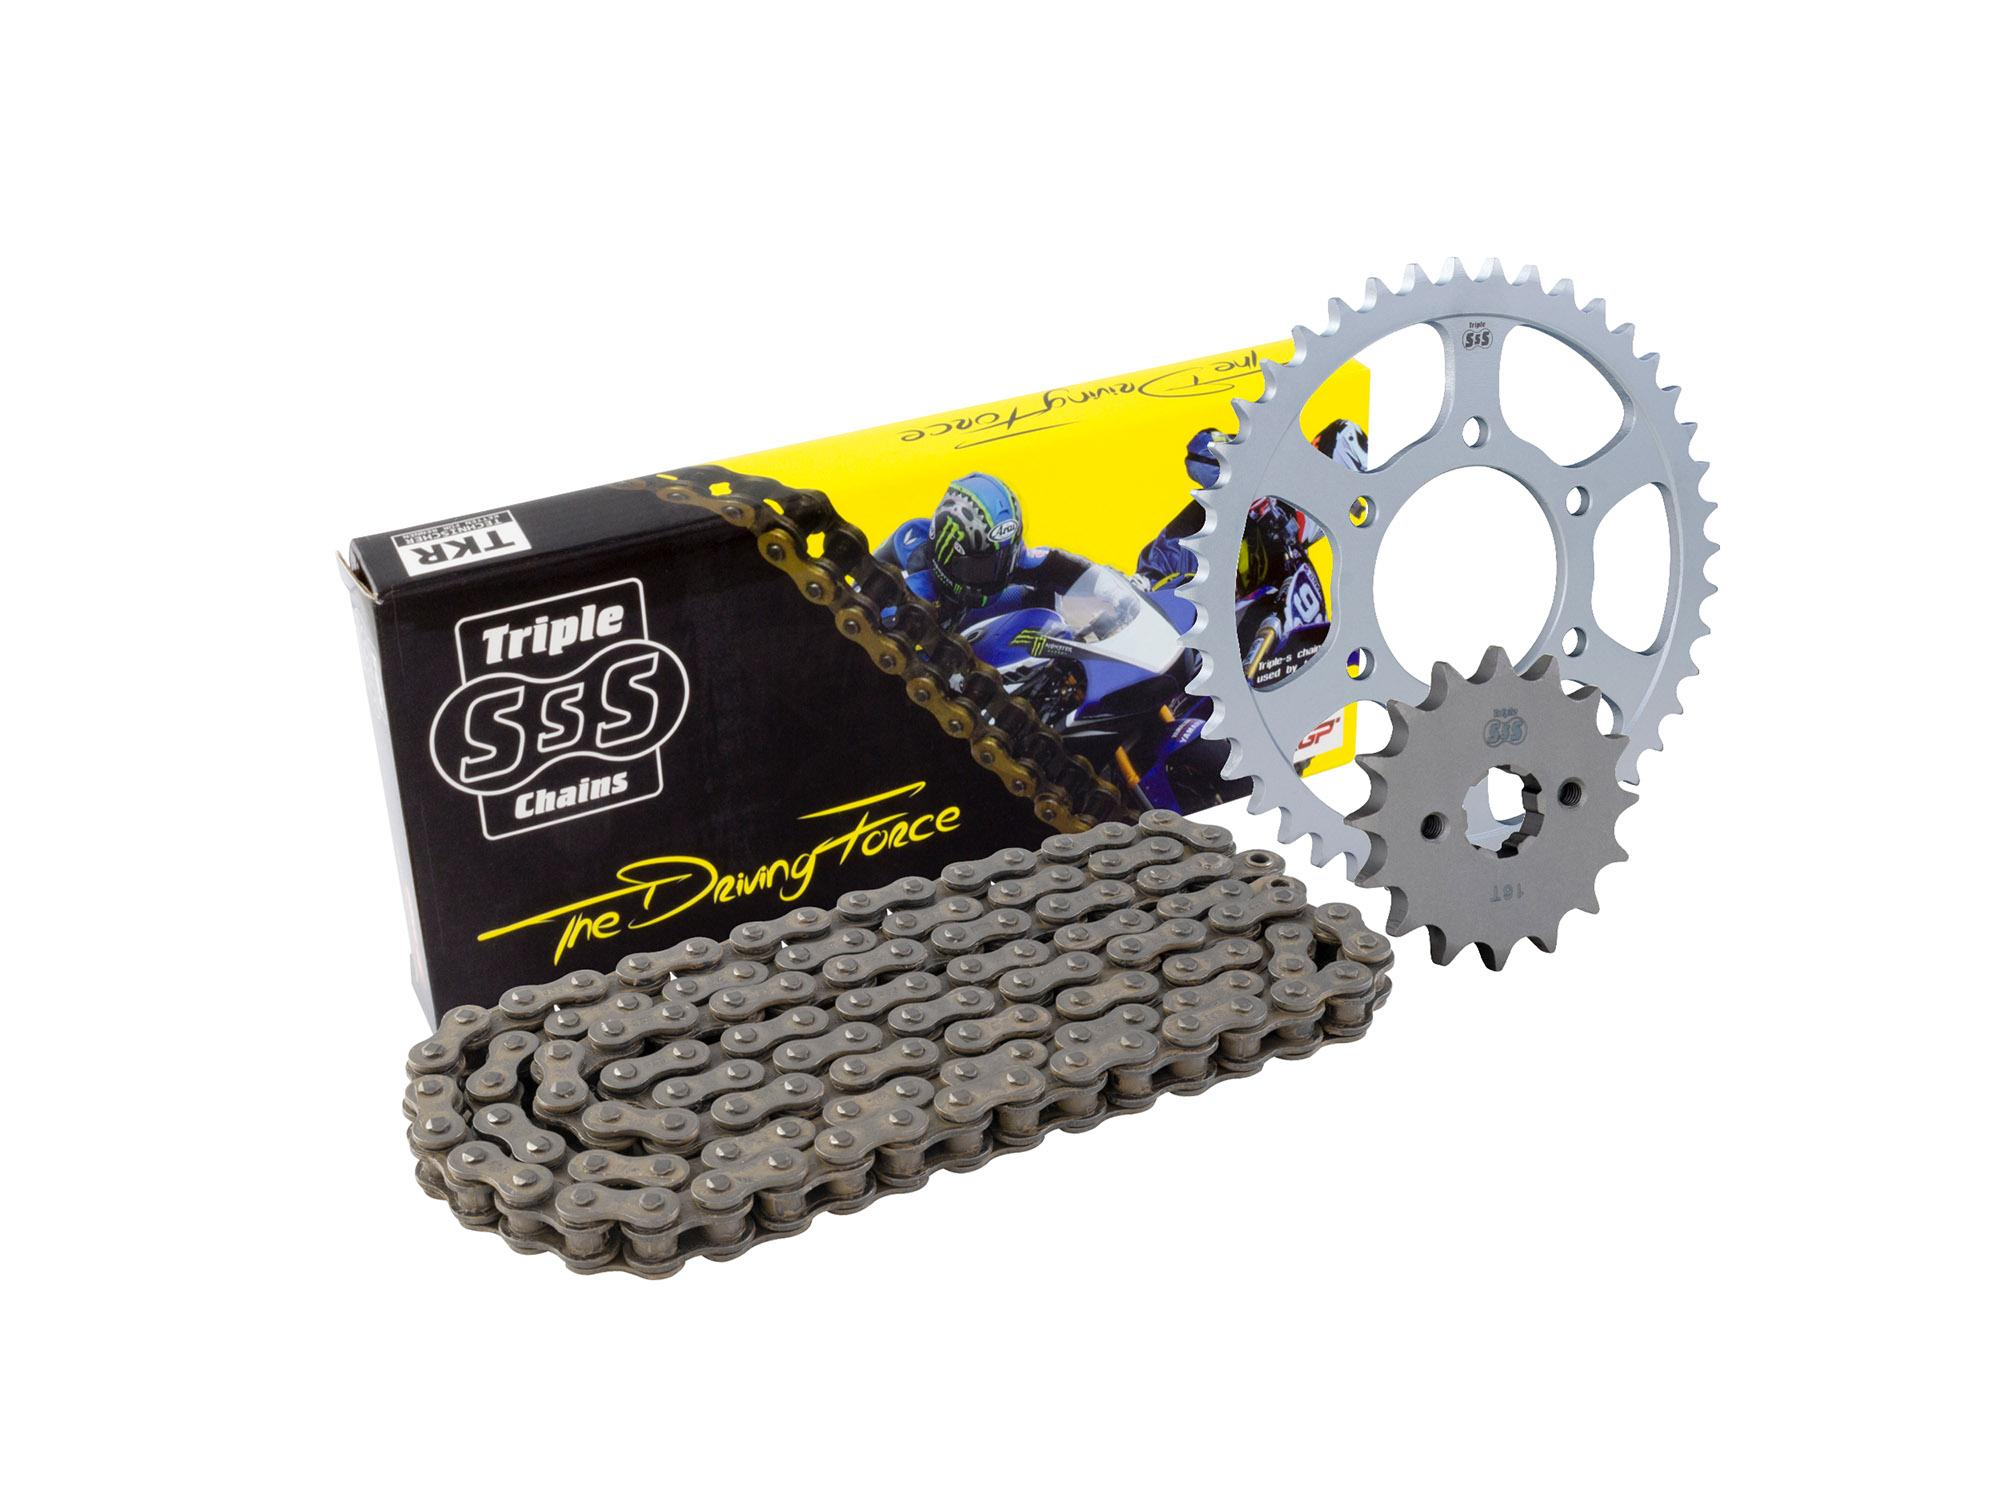 Kawasaki KLX250 SF W9F/WAF 09-10 Chain & Sprocket Kit: 13T Front, 39T Rear, HD O-Ring Black Chain 520H 104Link